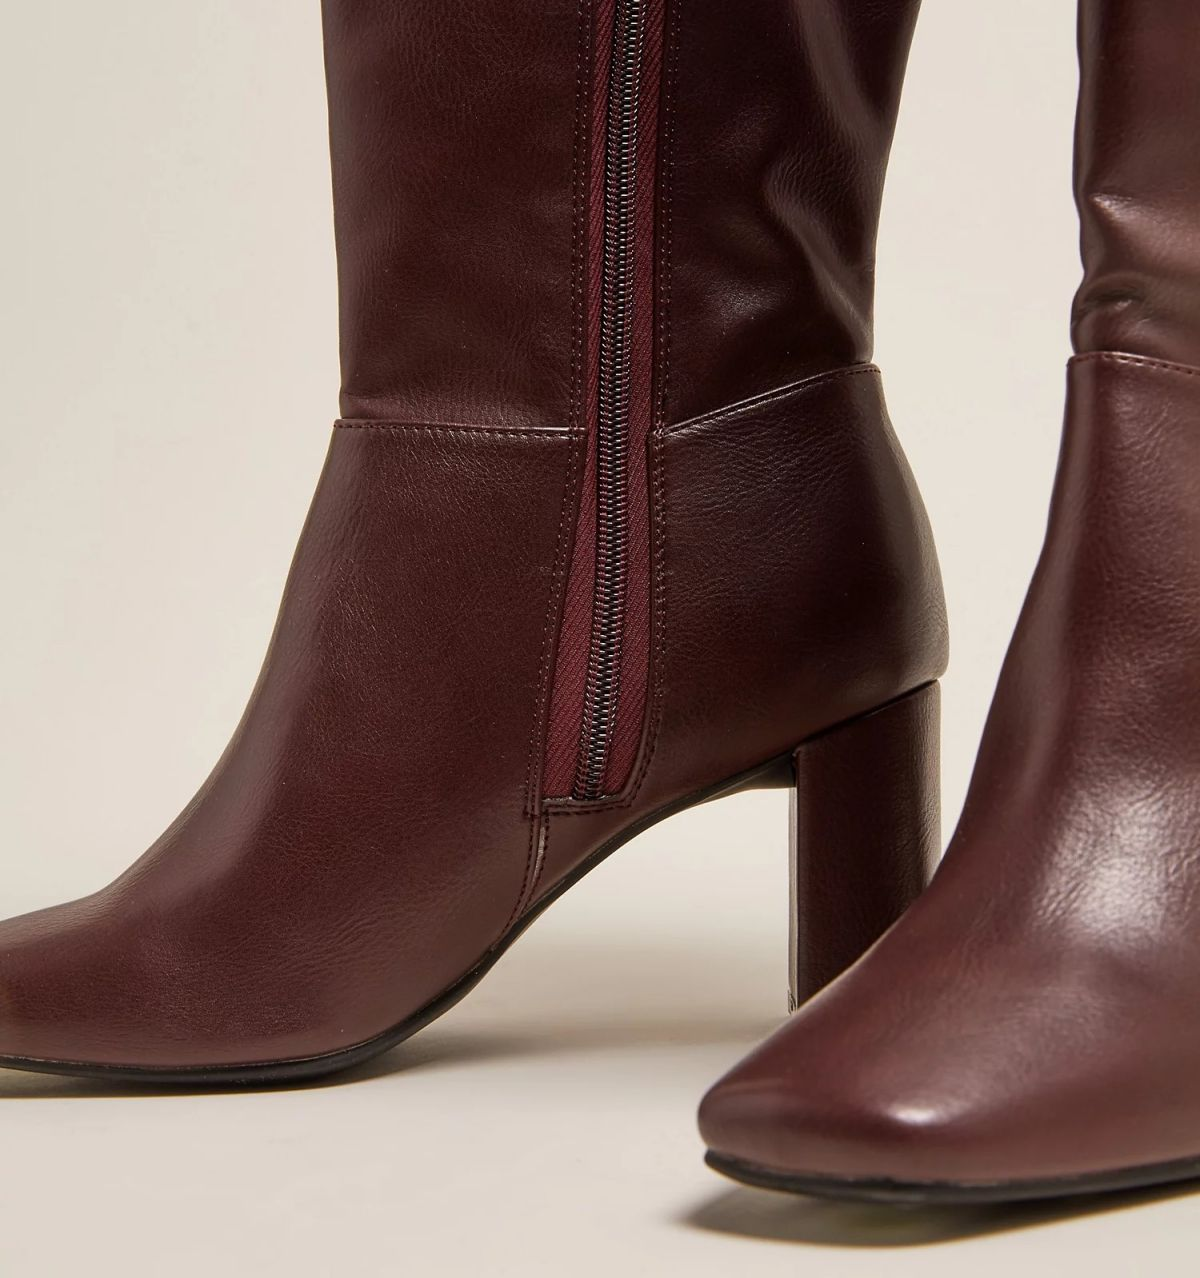 50 Marks \u0026 Spencer knee high boots are